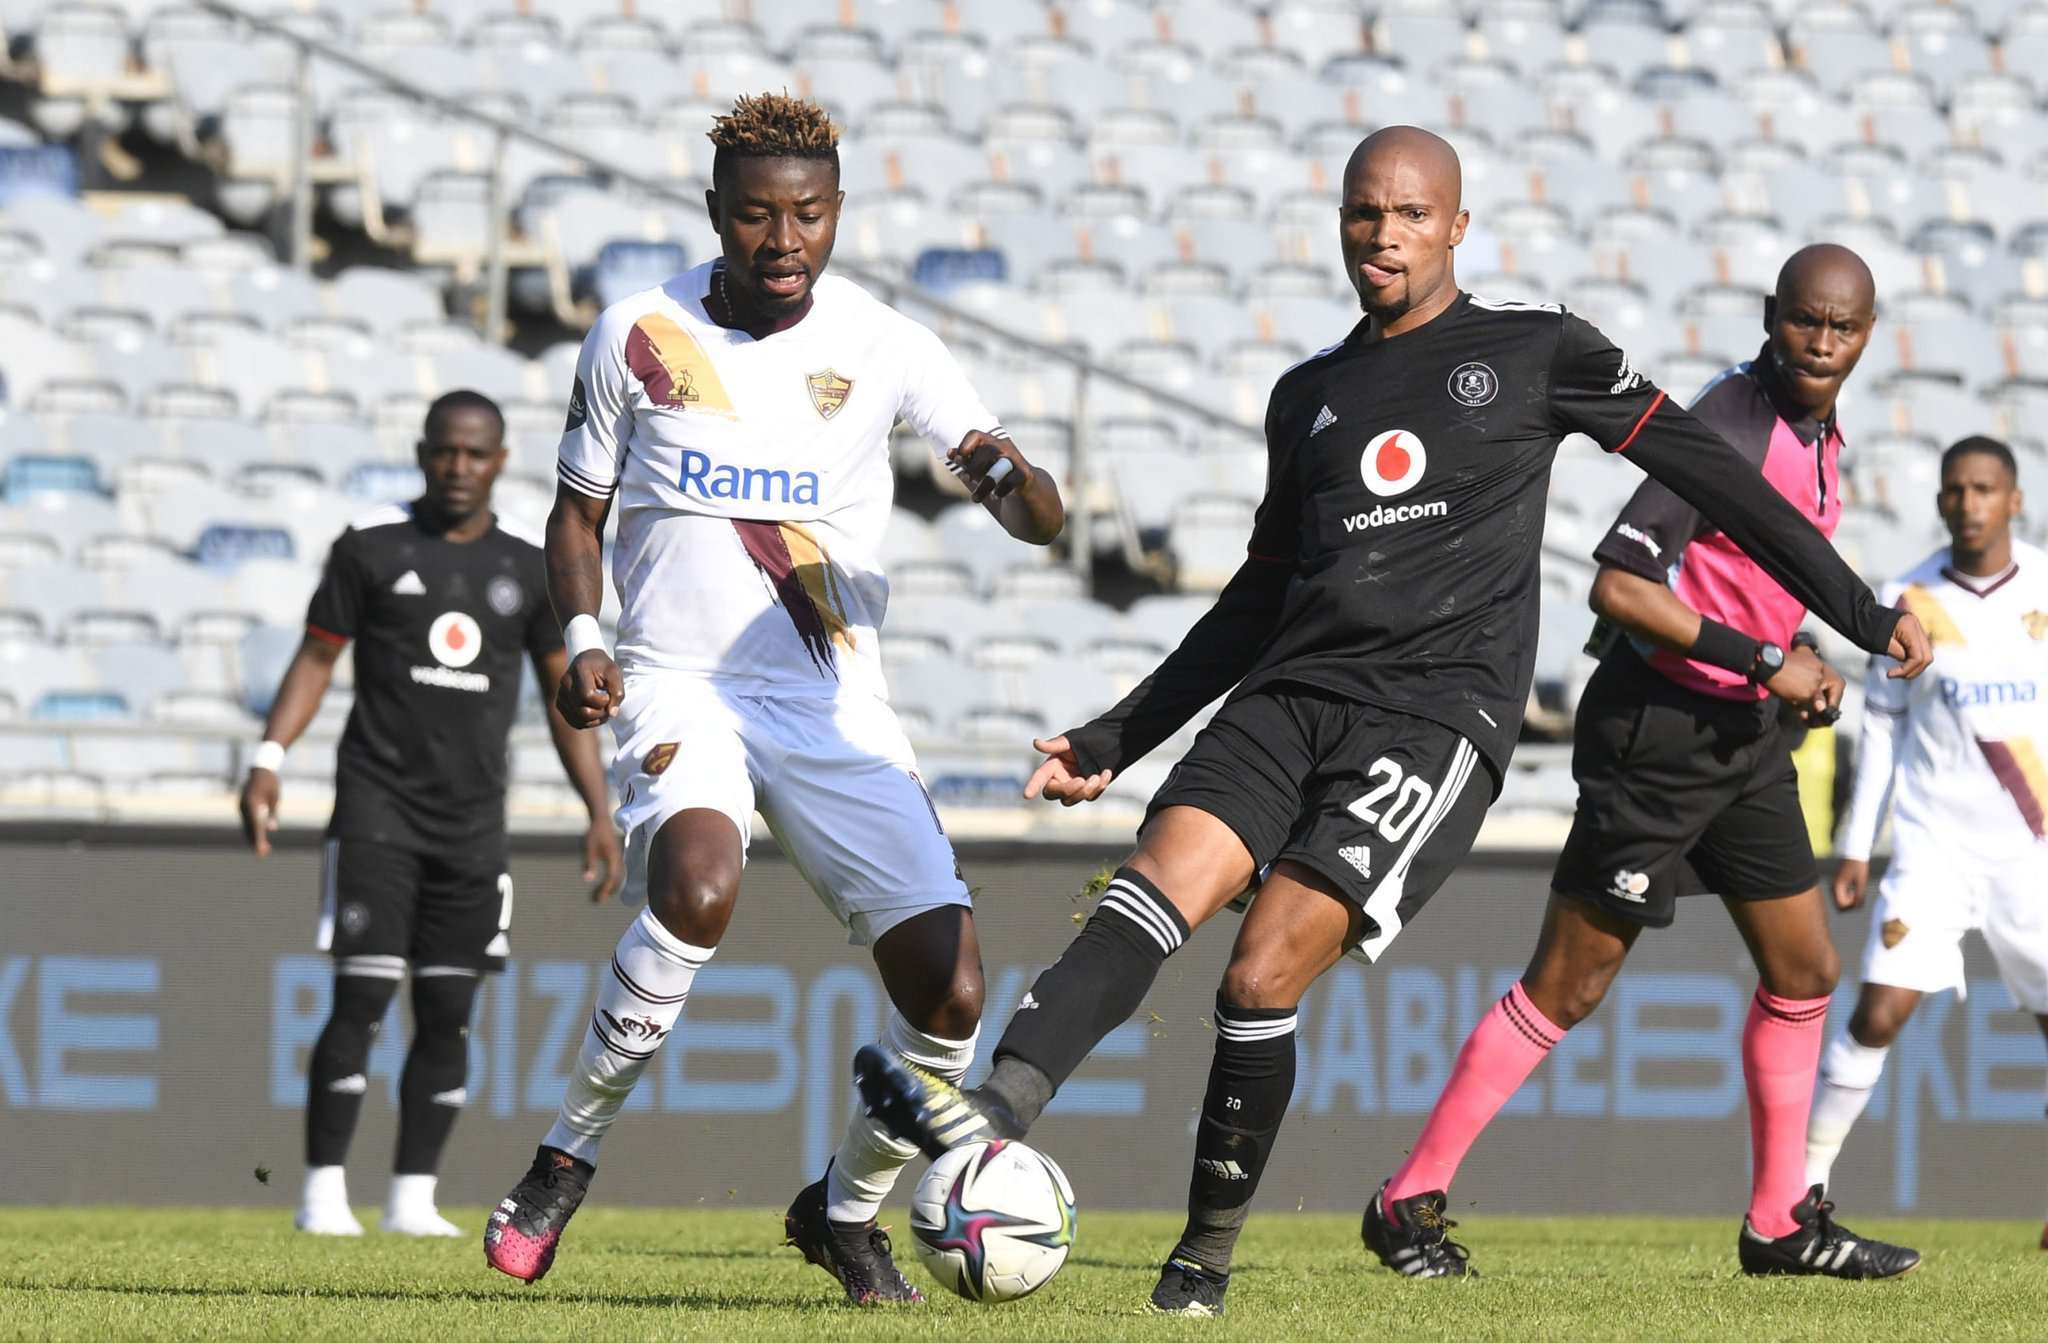 10-MAN PIRATES OPEN WITH 2-2 DRAW